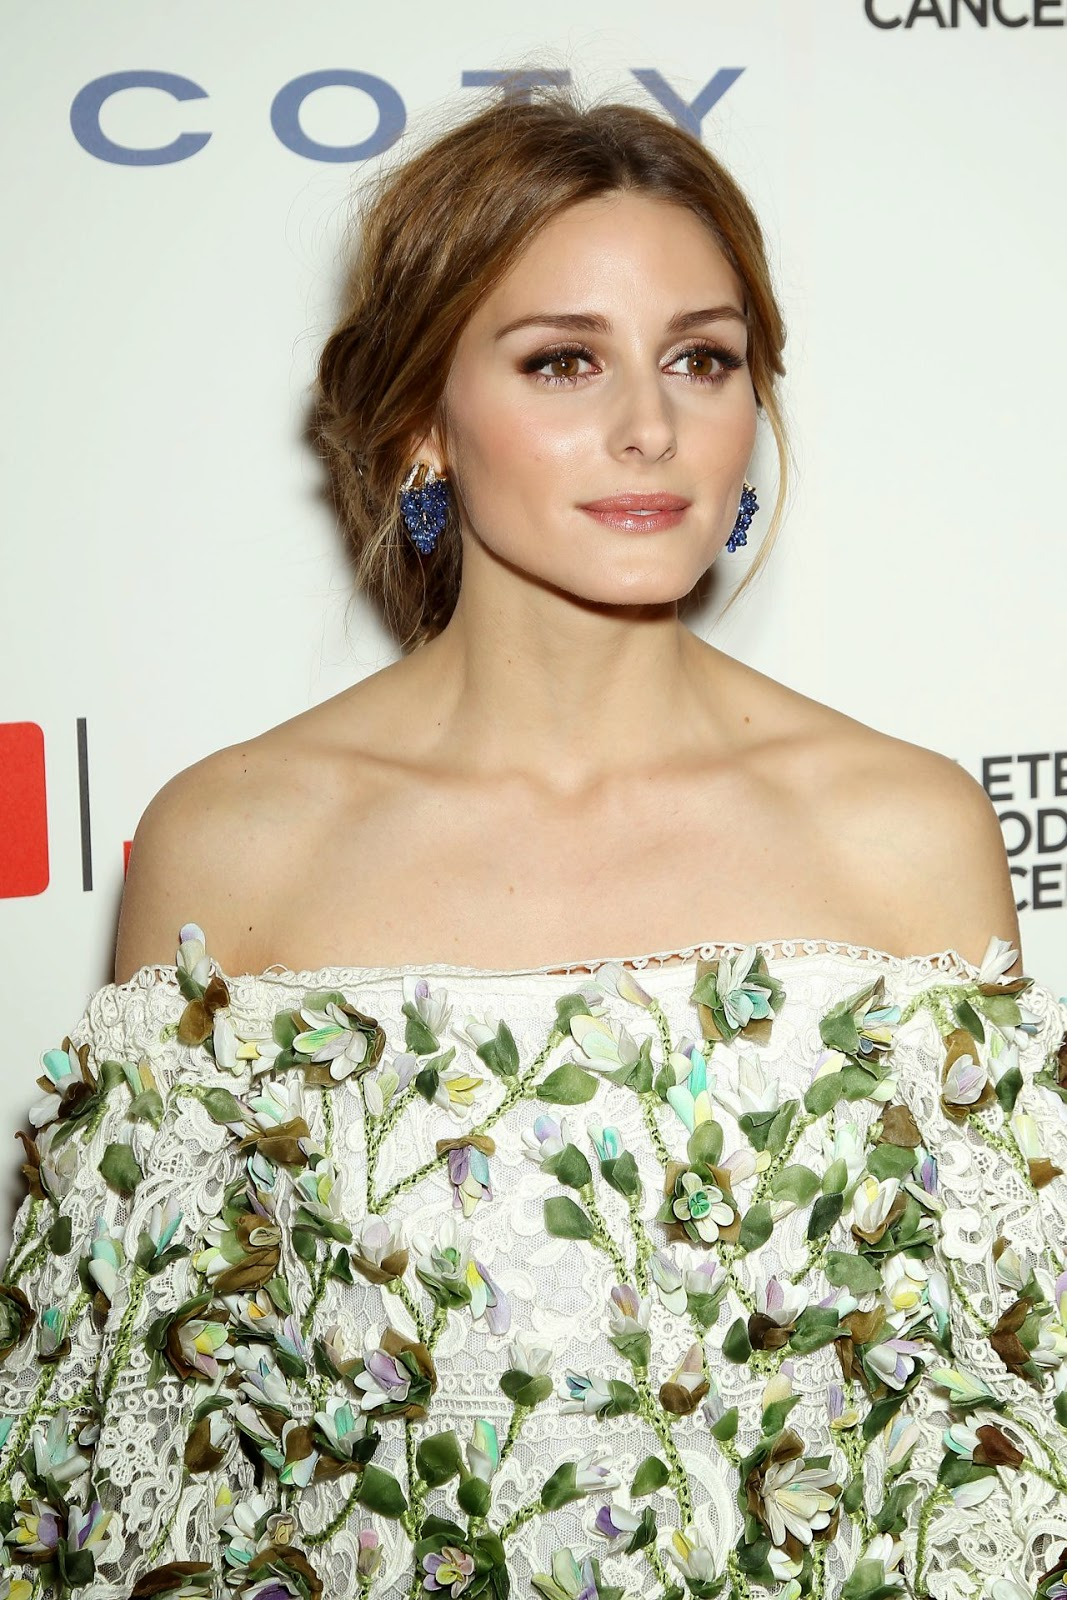 Olivia Palermo At The Ninth Annual Delete Blood Cancer Gala In New York Wearing Marchesa.